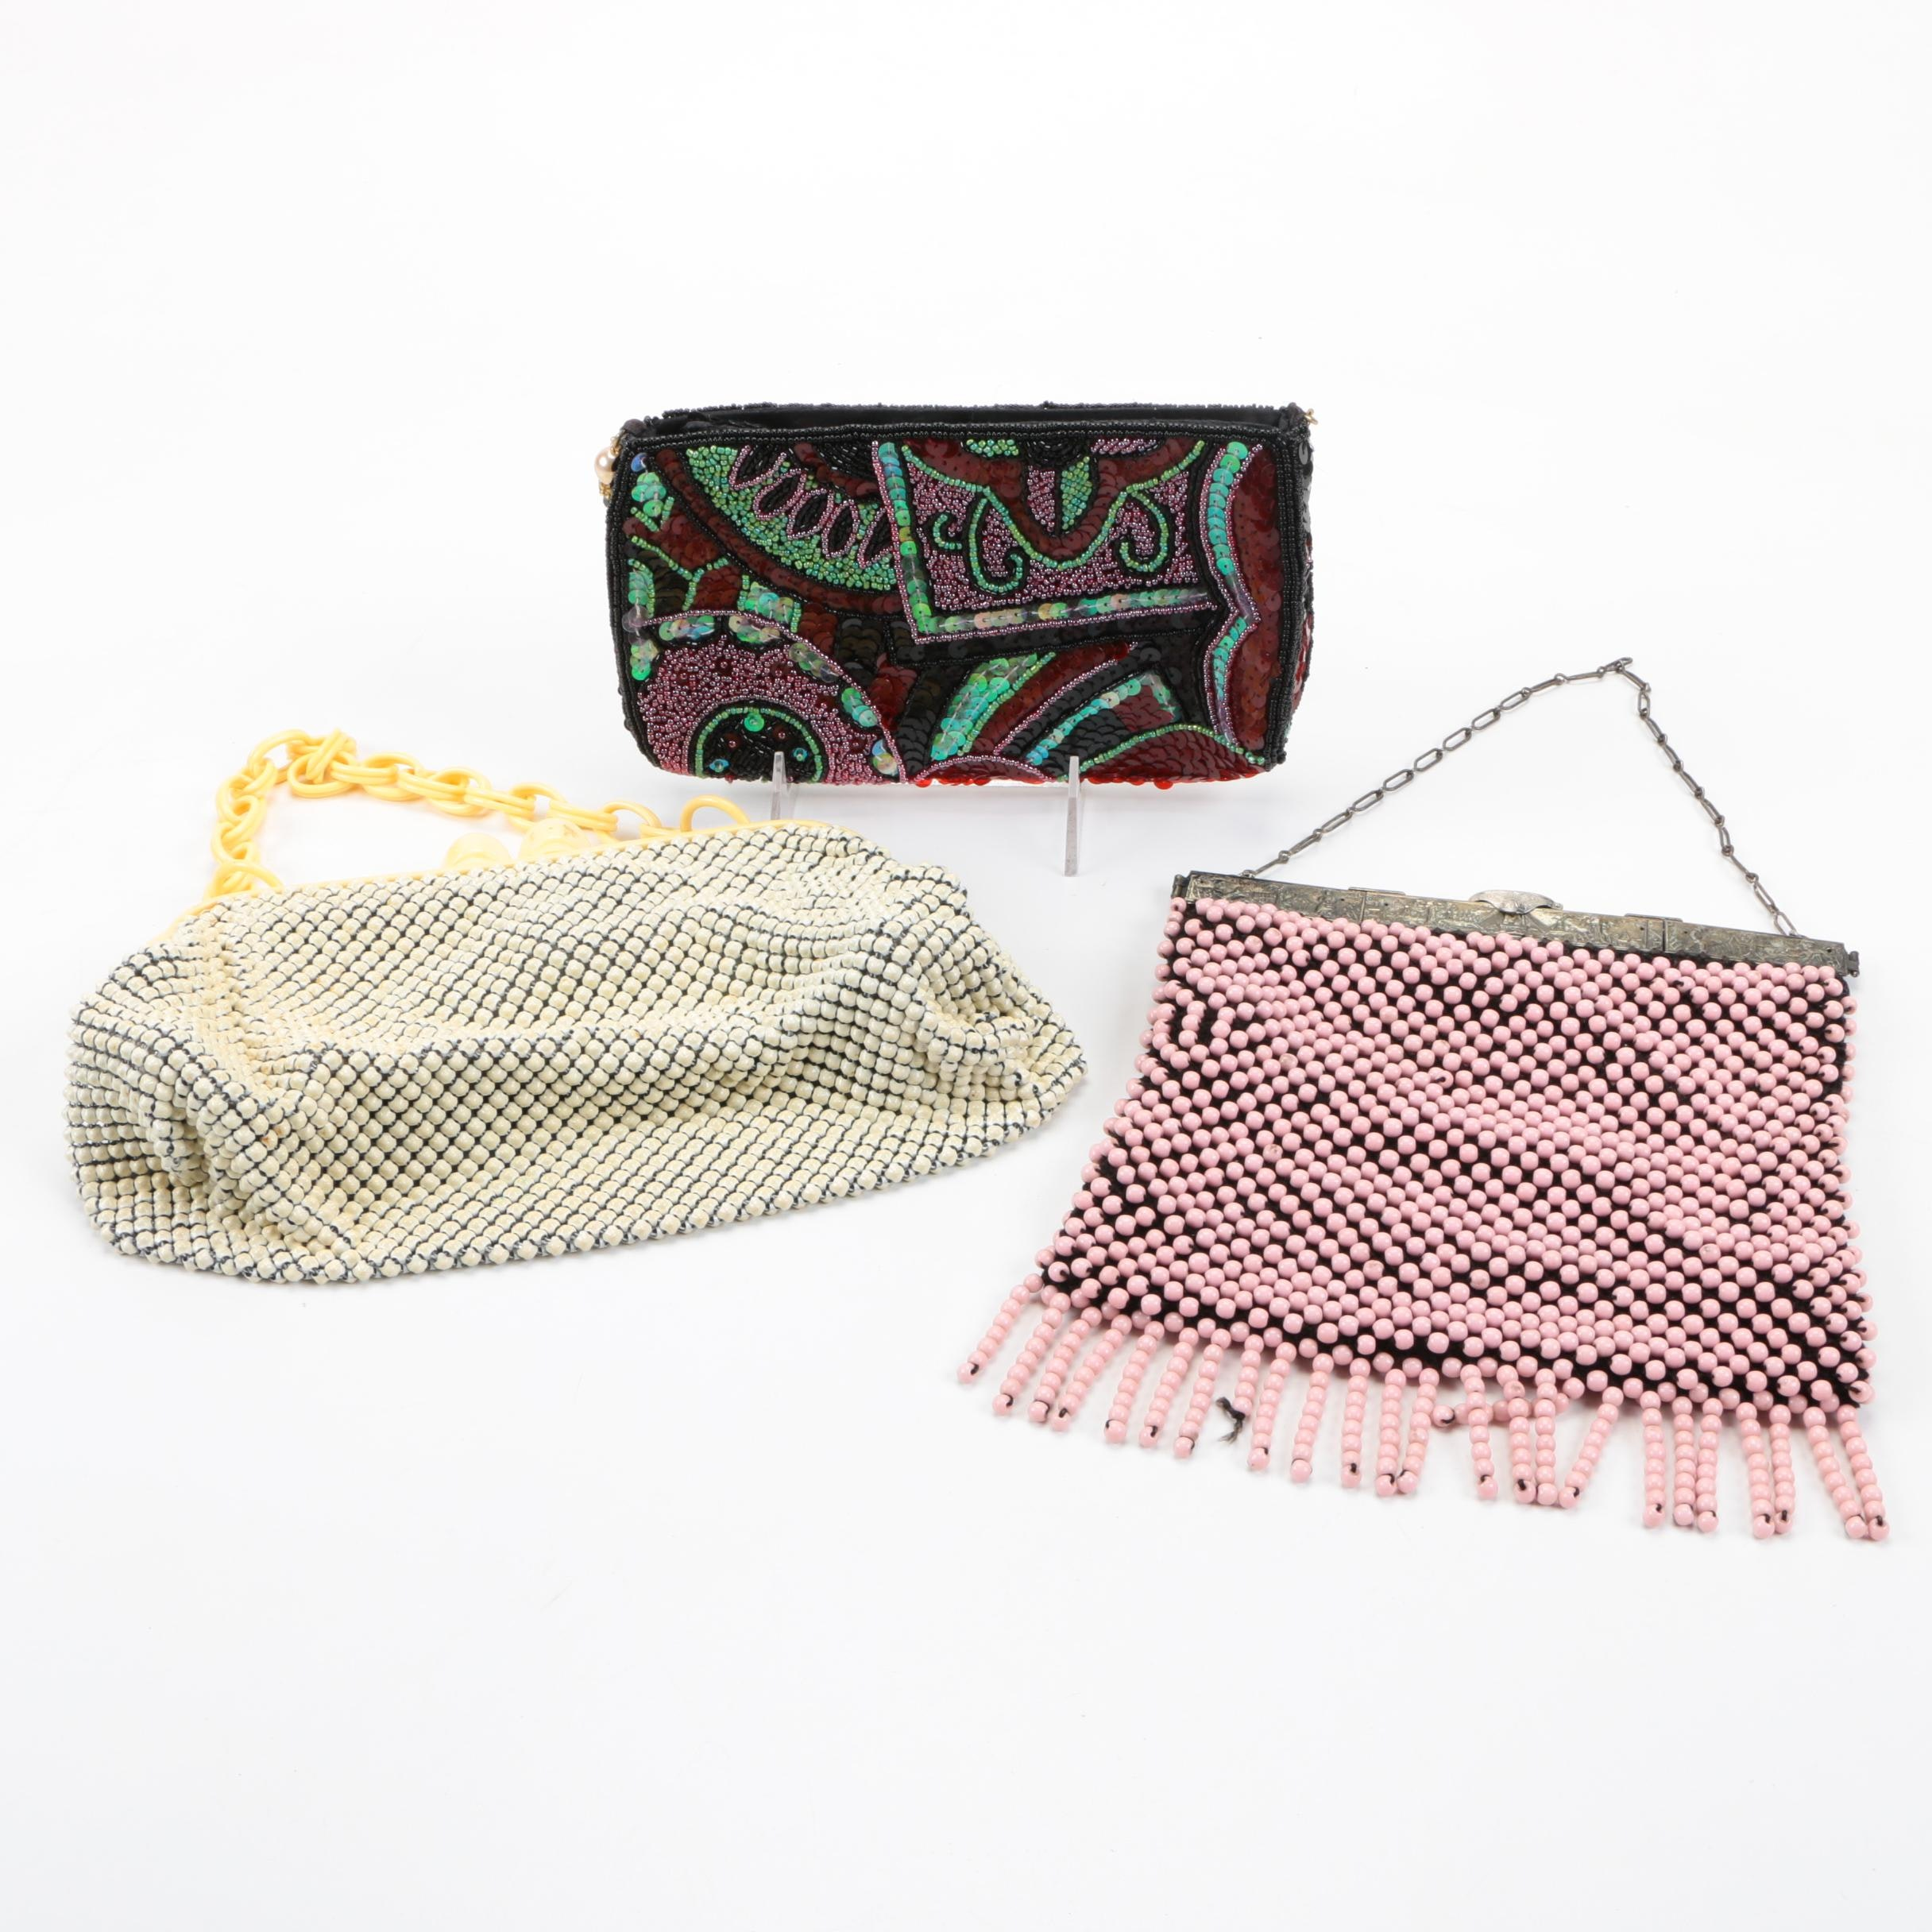 Beaded Handbags Including Vintage Whiting & Davis